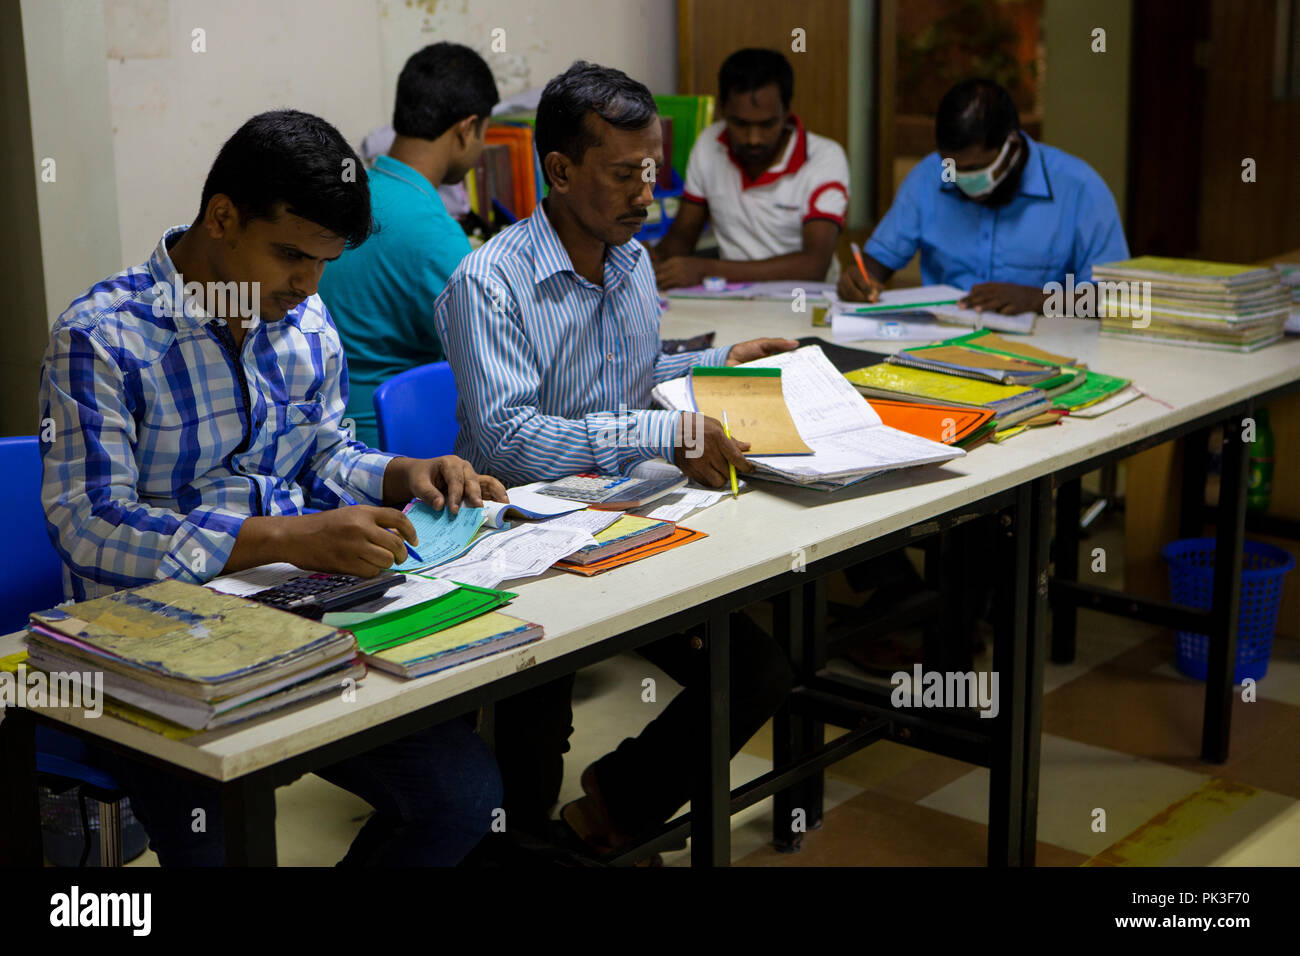 Stock check, accounting and processing orders inside a garment factory in Bangladesh. - Stock Image